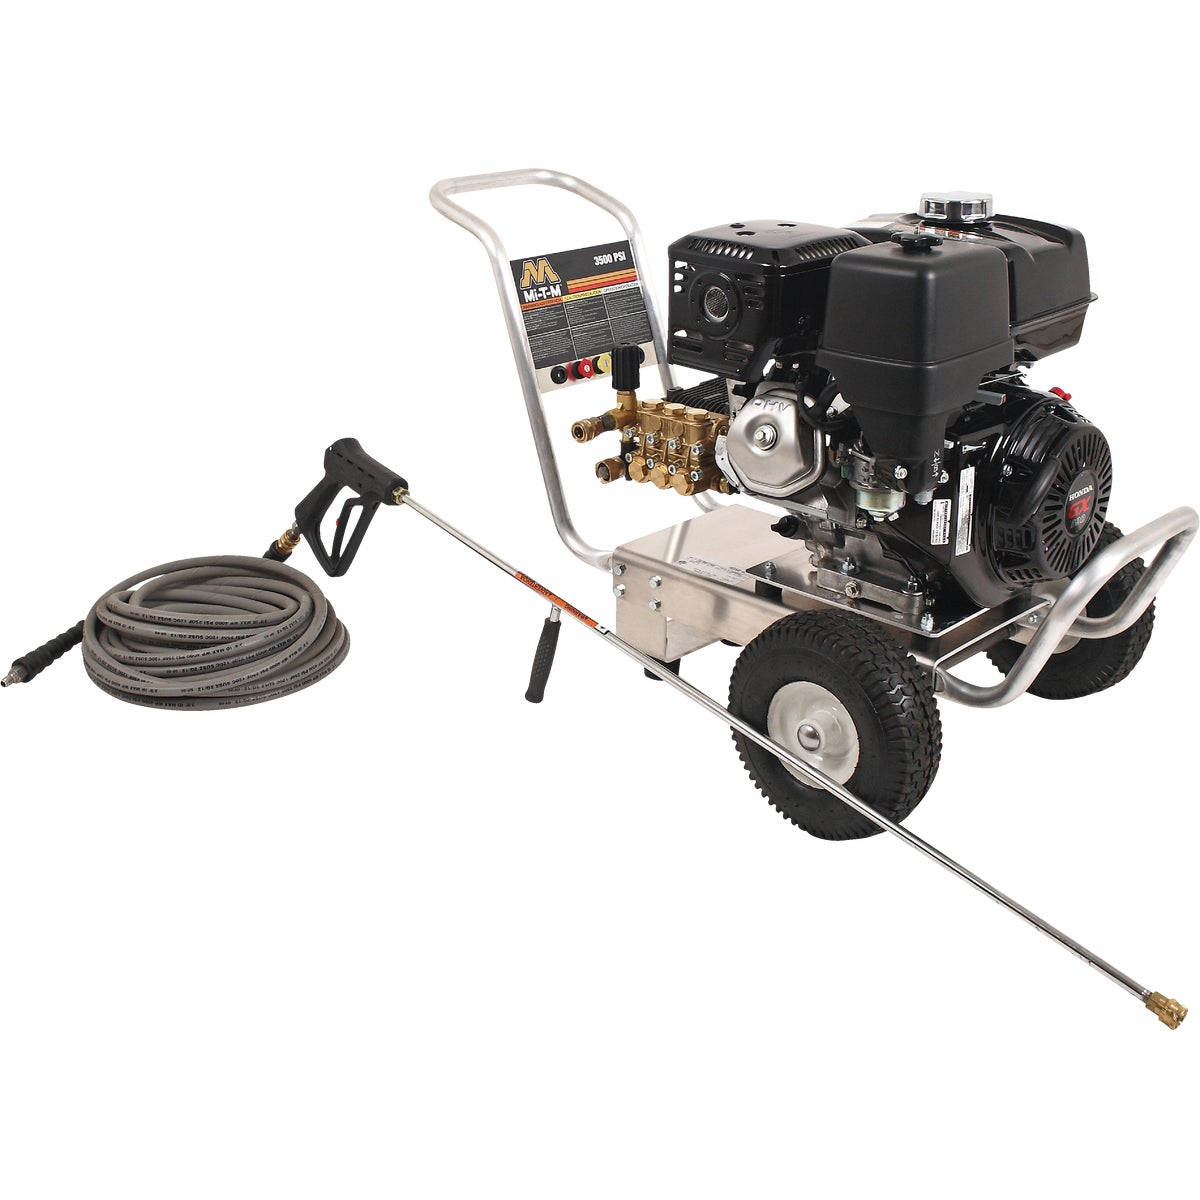 3500PSI PRESSURE WASHER - CA-3504-1MAH by Mi T M Corp